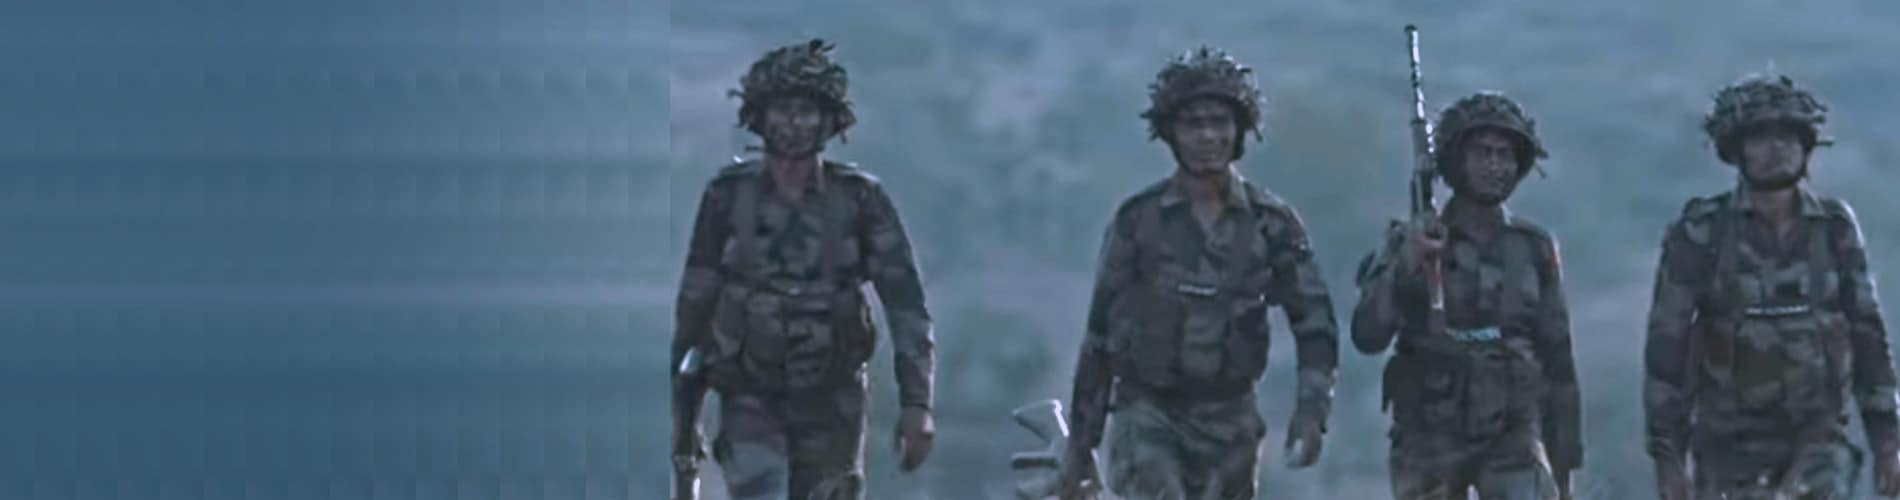 Discipline And Planning Are Most Important Factors To Learn From The Indian Army. Here's Why